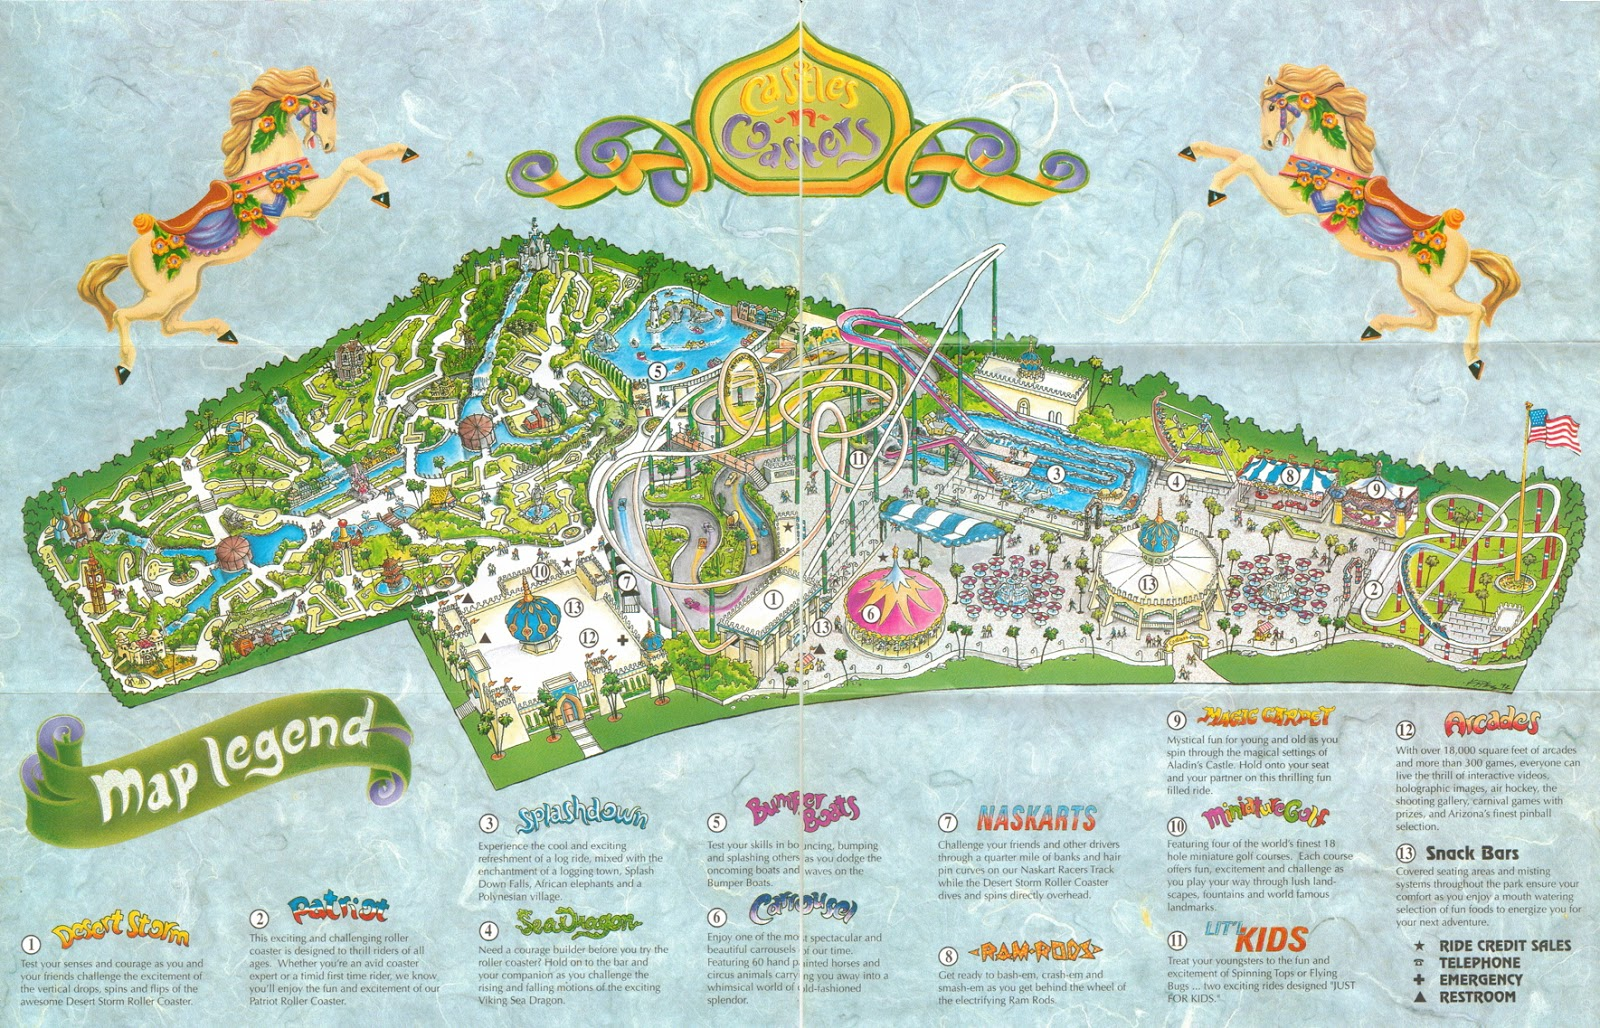 Castles and coasters coupons